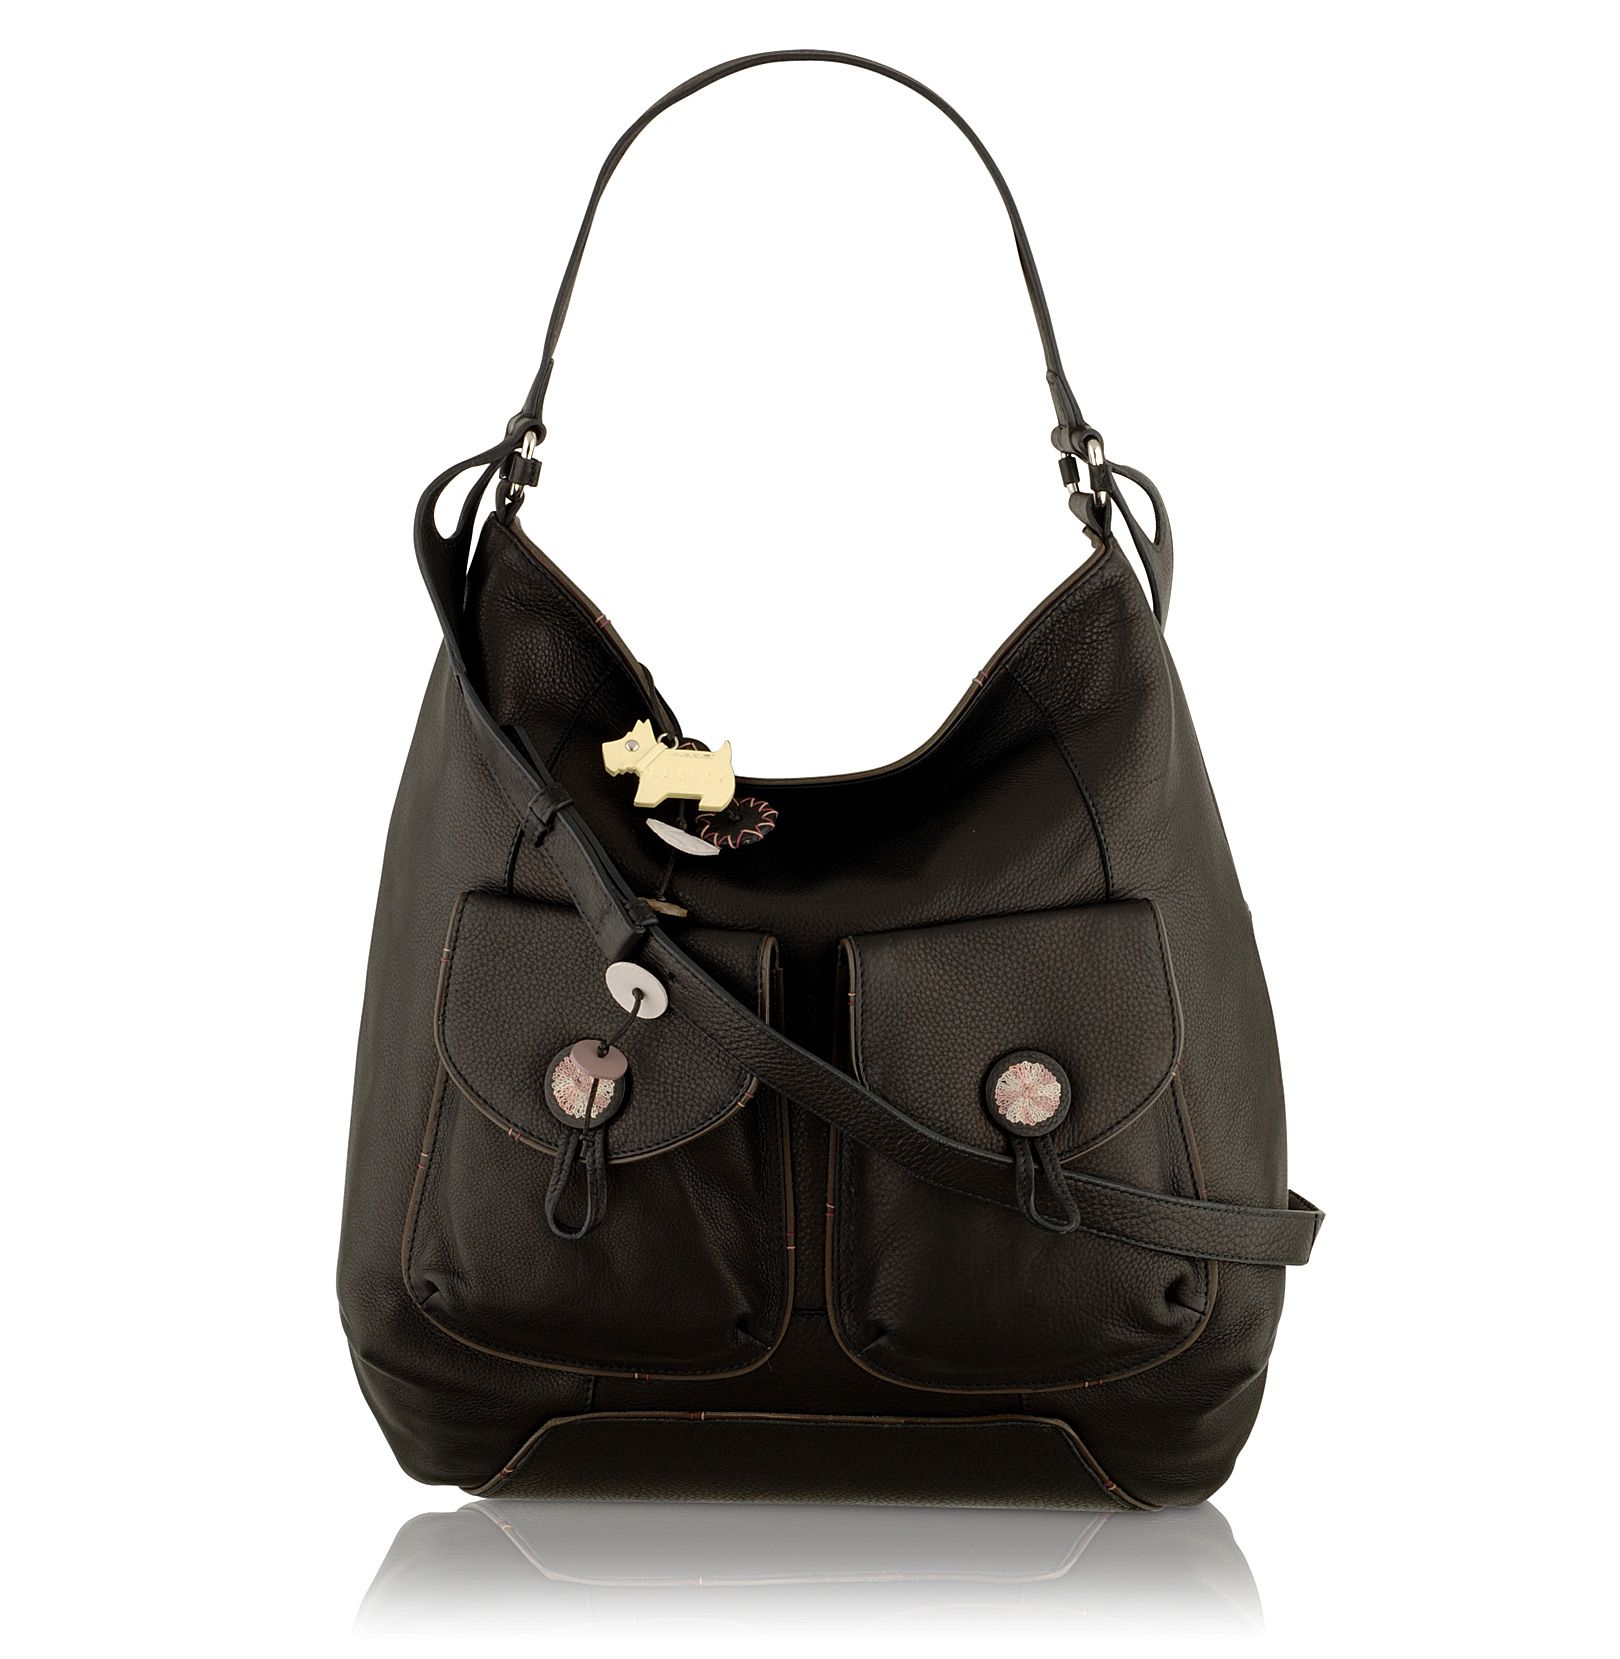 Sherbourne Extra Large leather hobo bag.